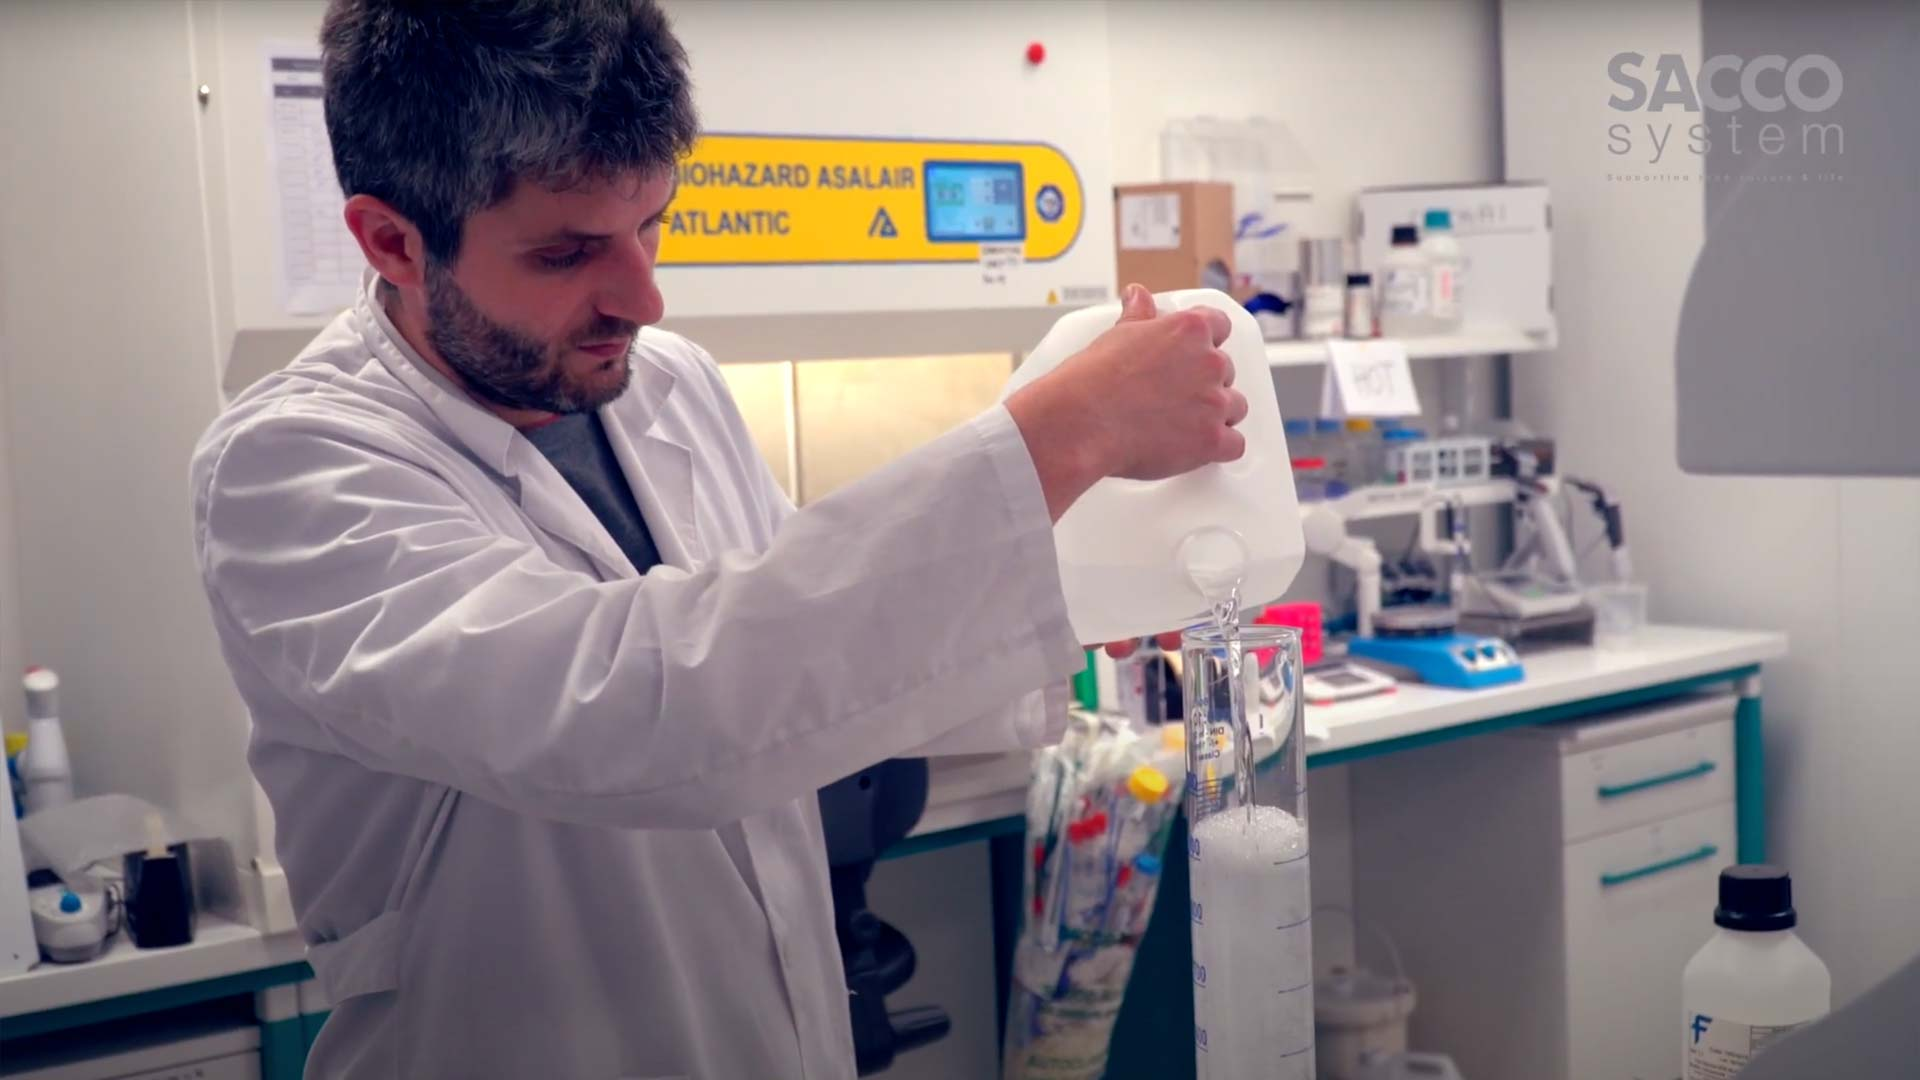 Biotech Production Process – Probiotics by Sacco System